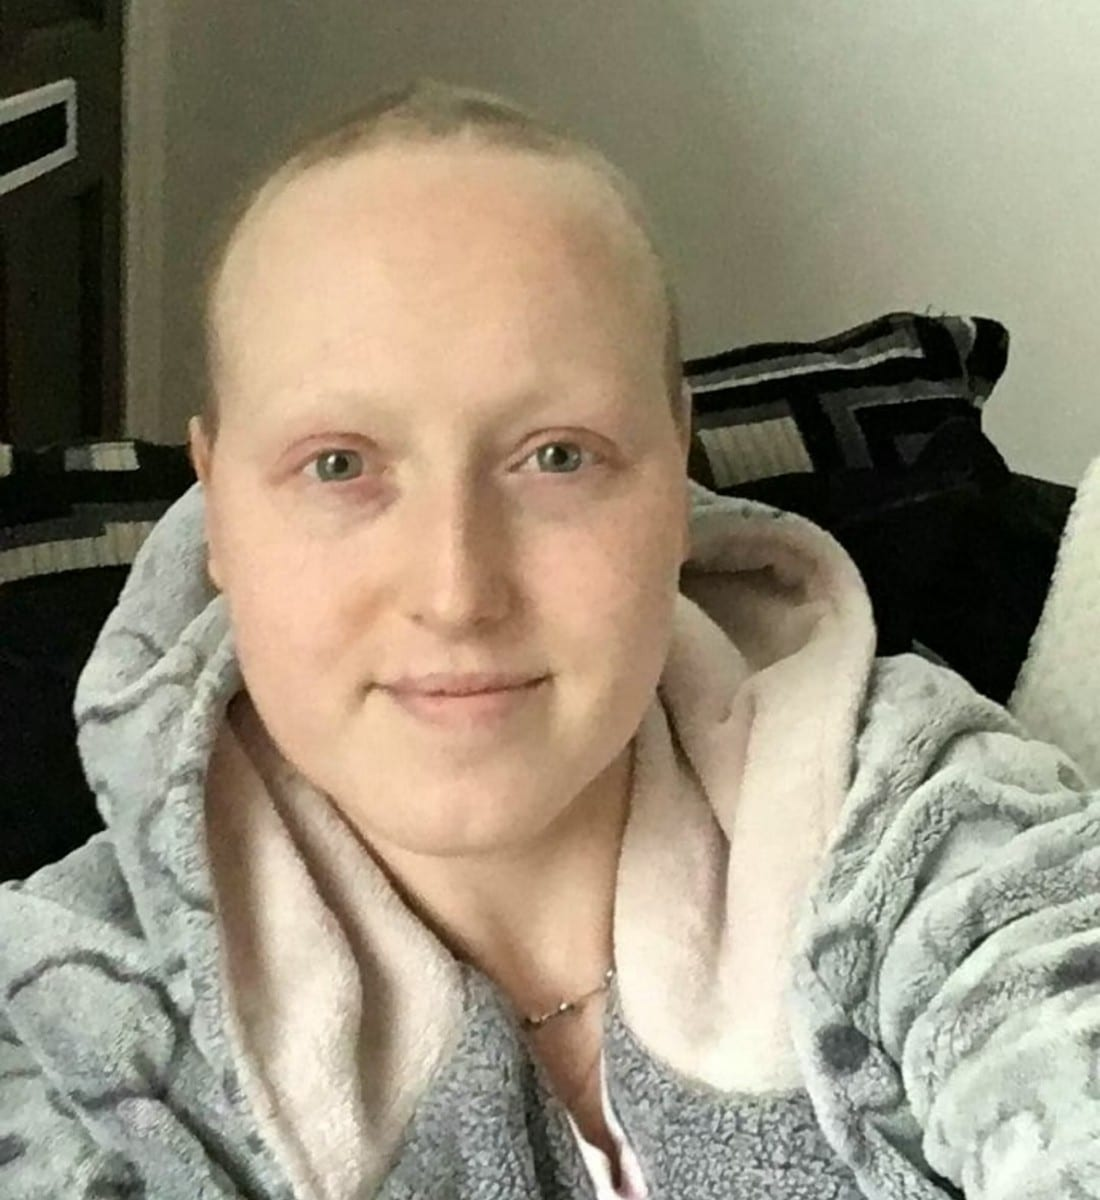 'It's Not Just The Physical Effects But Also The Mental Torture' – Mum Had Double Mastectomy And Chemo Before Docs Admit They Misdiagnosed Her With Breast Cancer